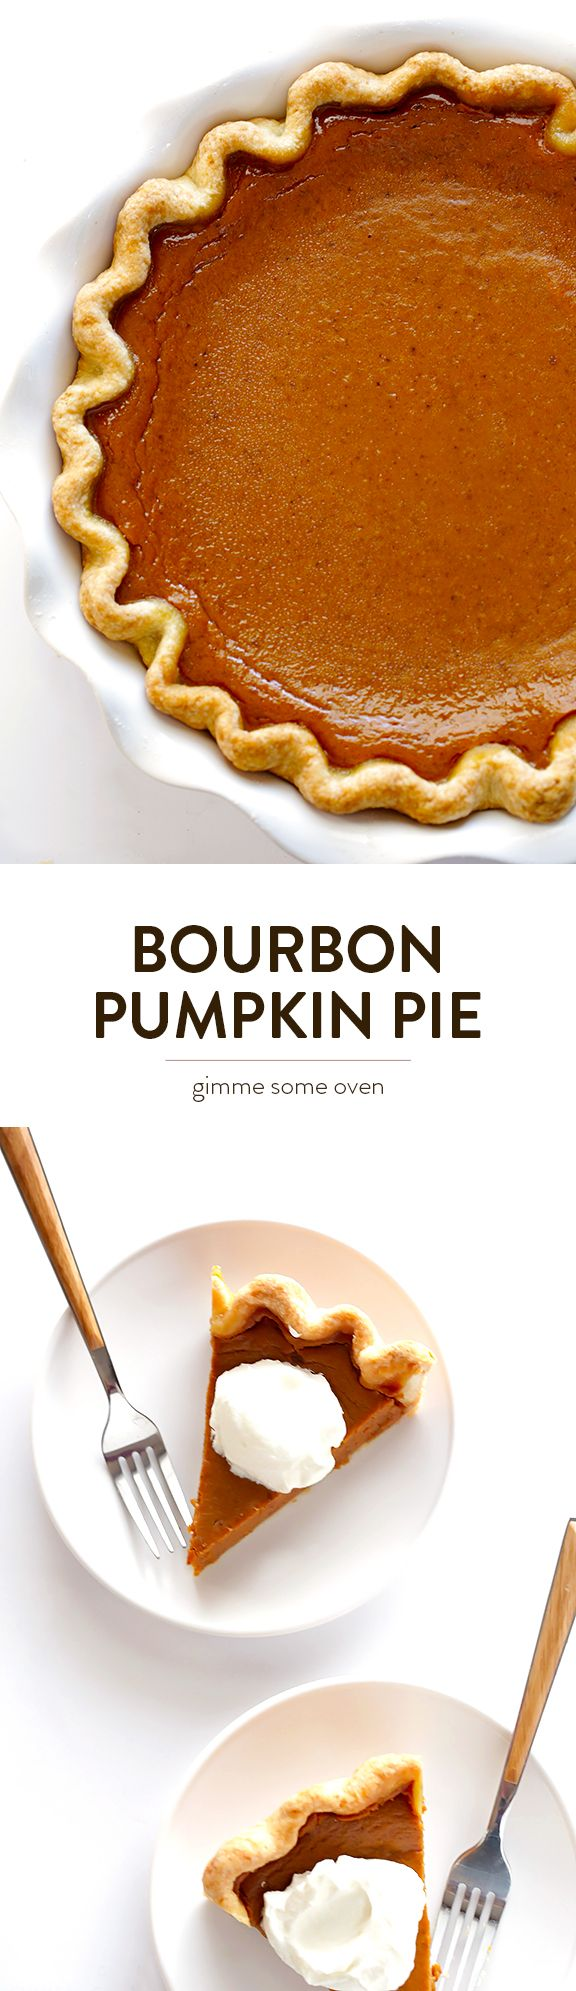 Kick up traditional pumpkin pie with a splash of bourbon!  It's easy to make, and sure to be a hit. | gimmesomeoven.com